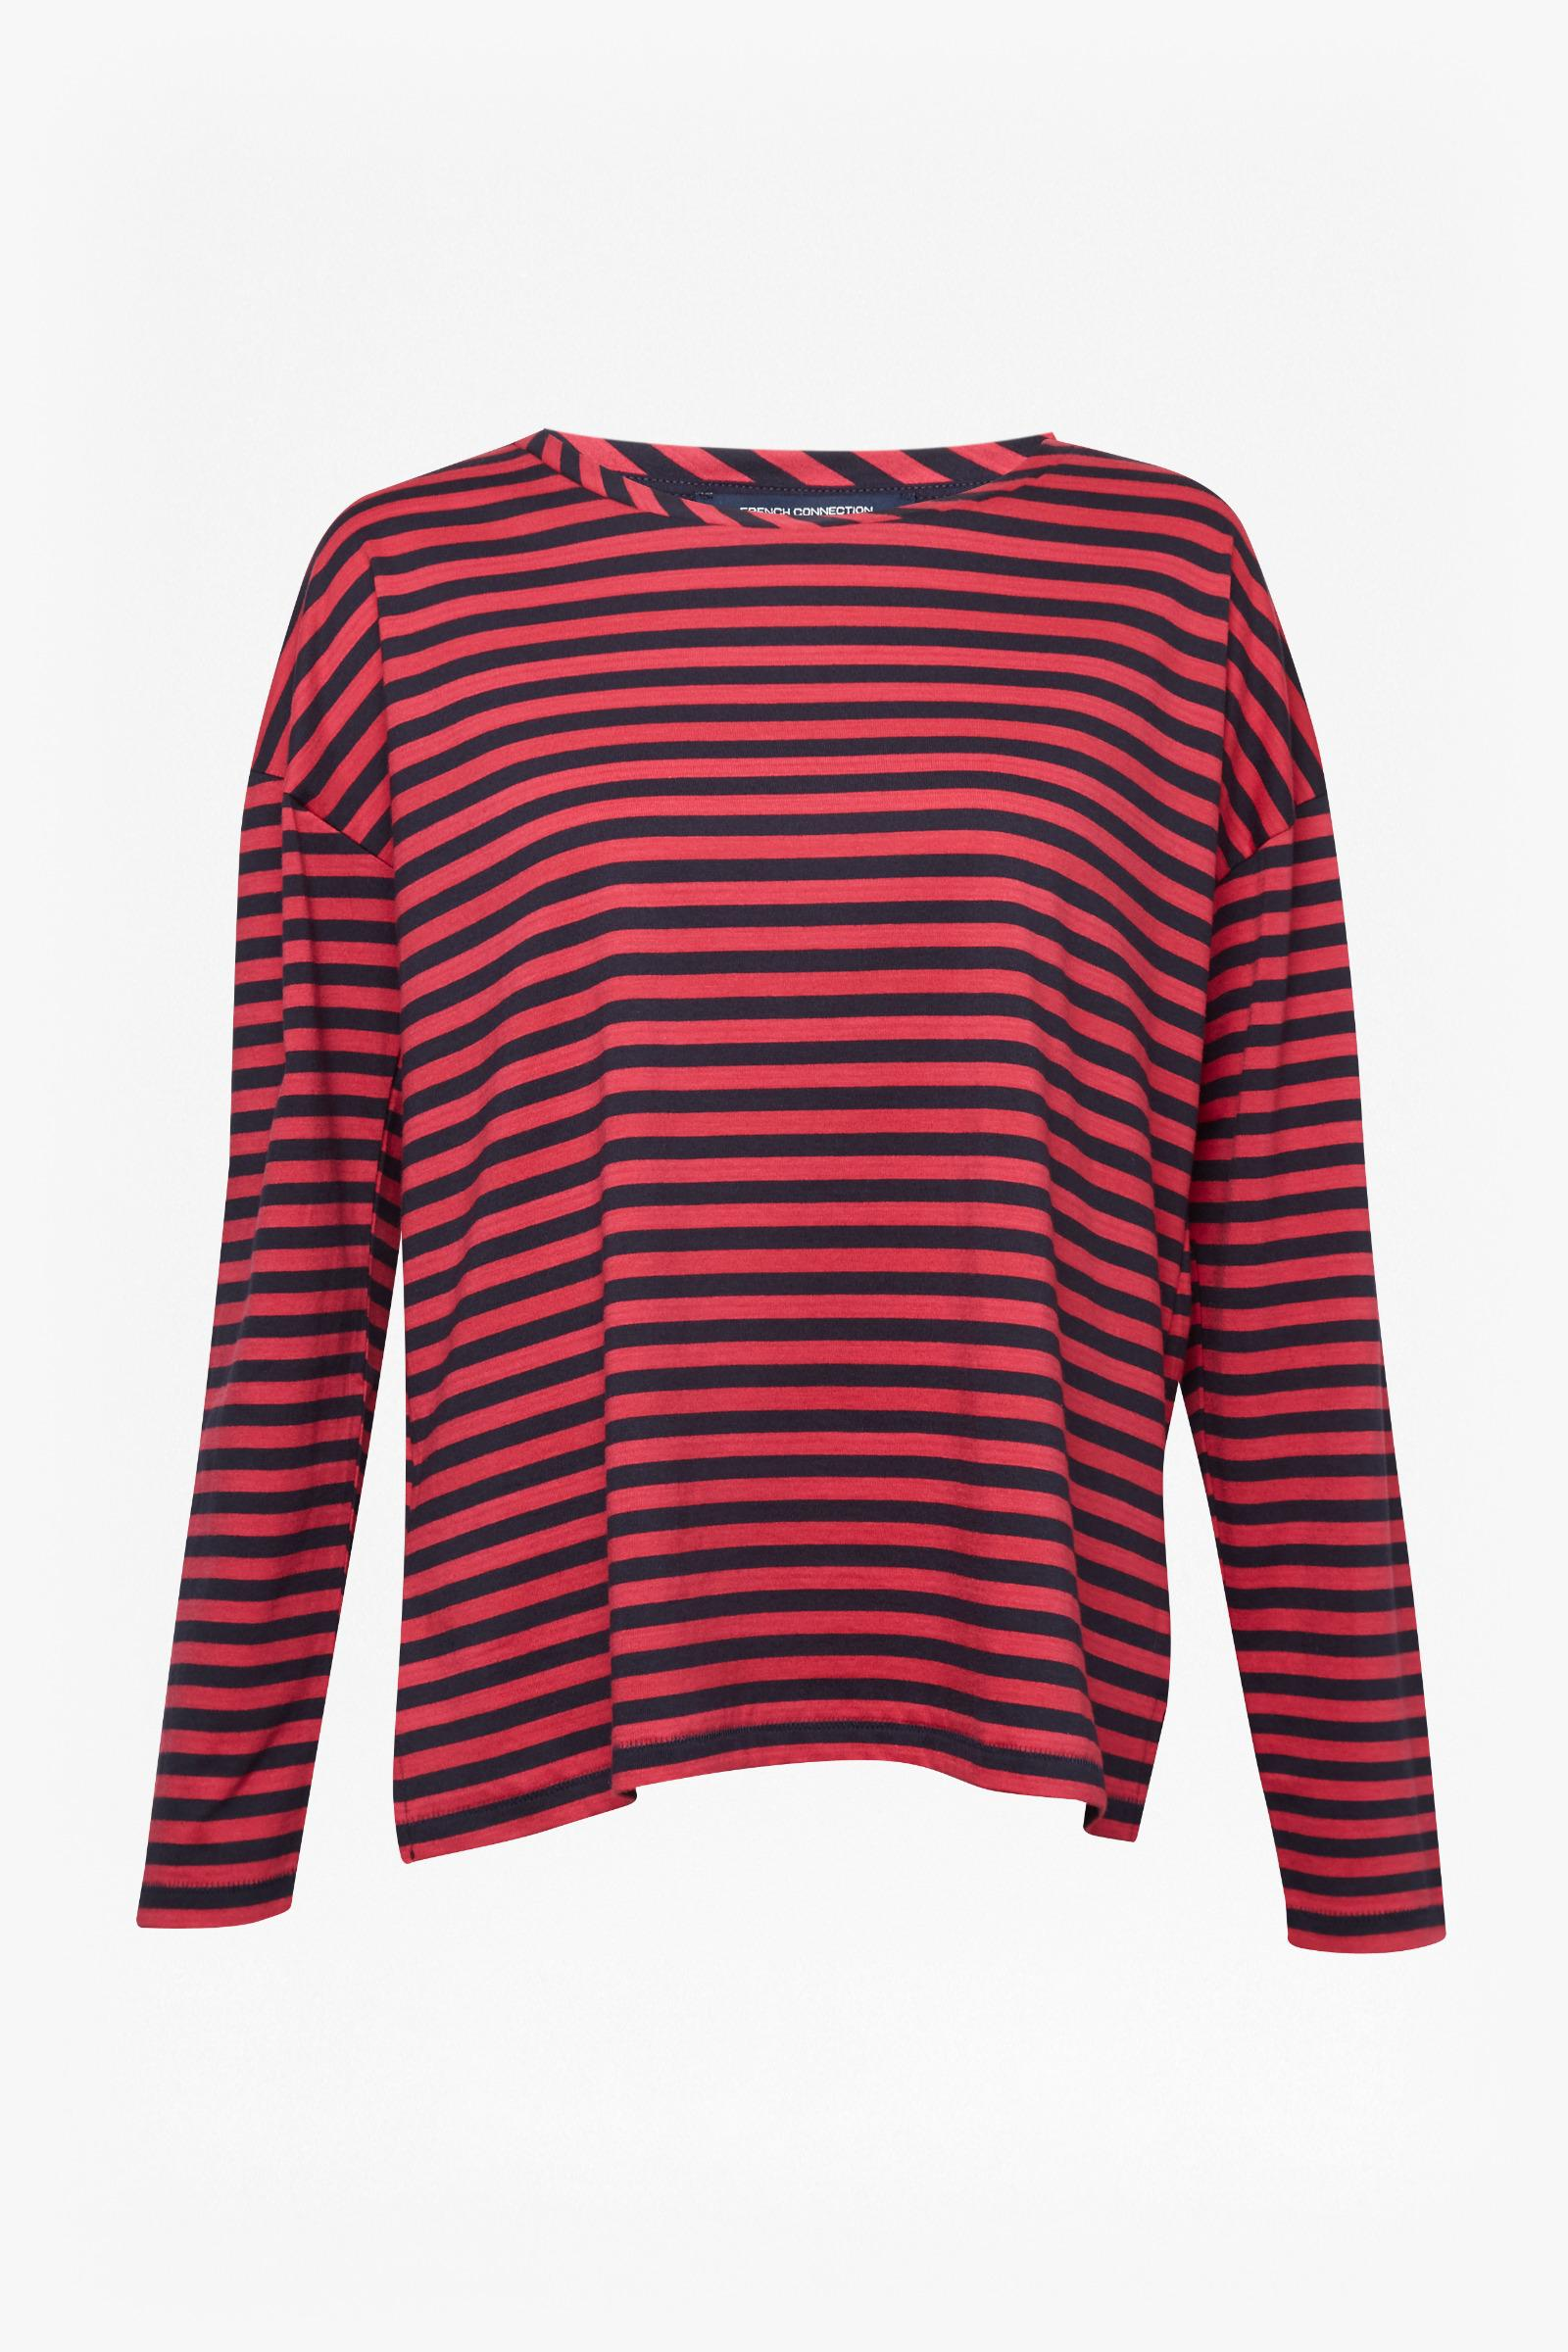 12ec6c58d6a Lyst - French Connection Tim Tim Light Stripe Top in Red